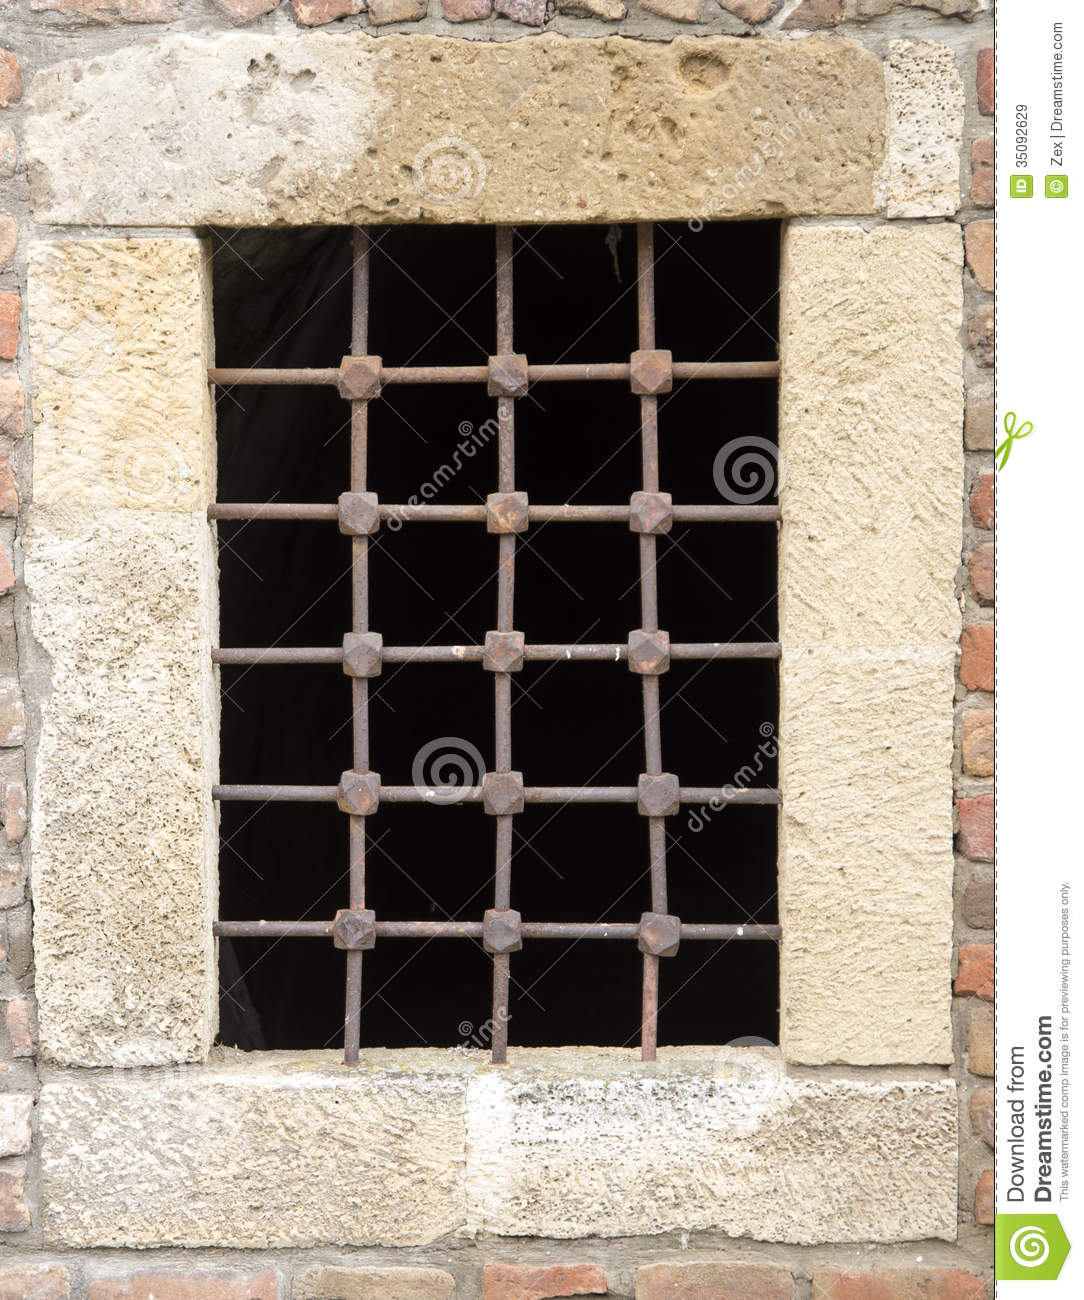 OLD PRISON BARS Royalty Free Stock Images